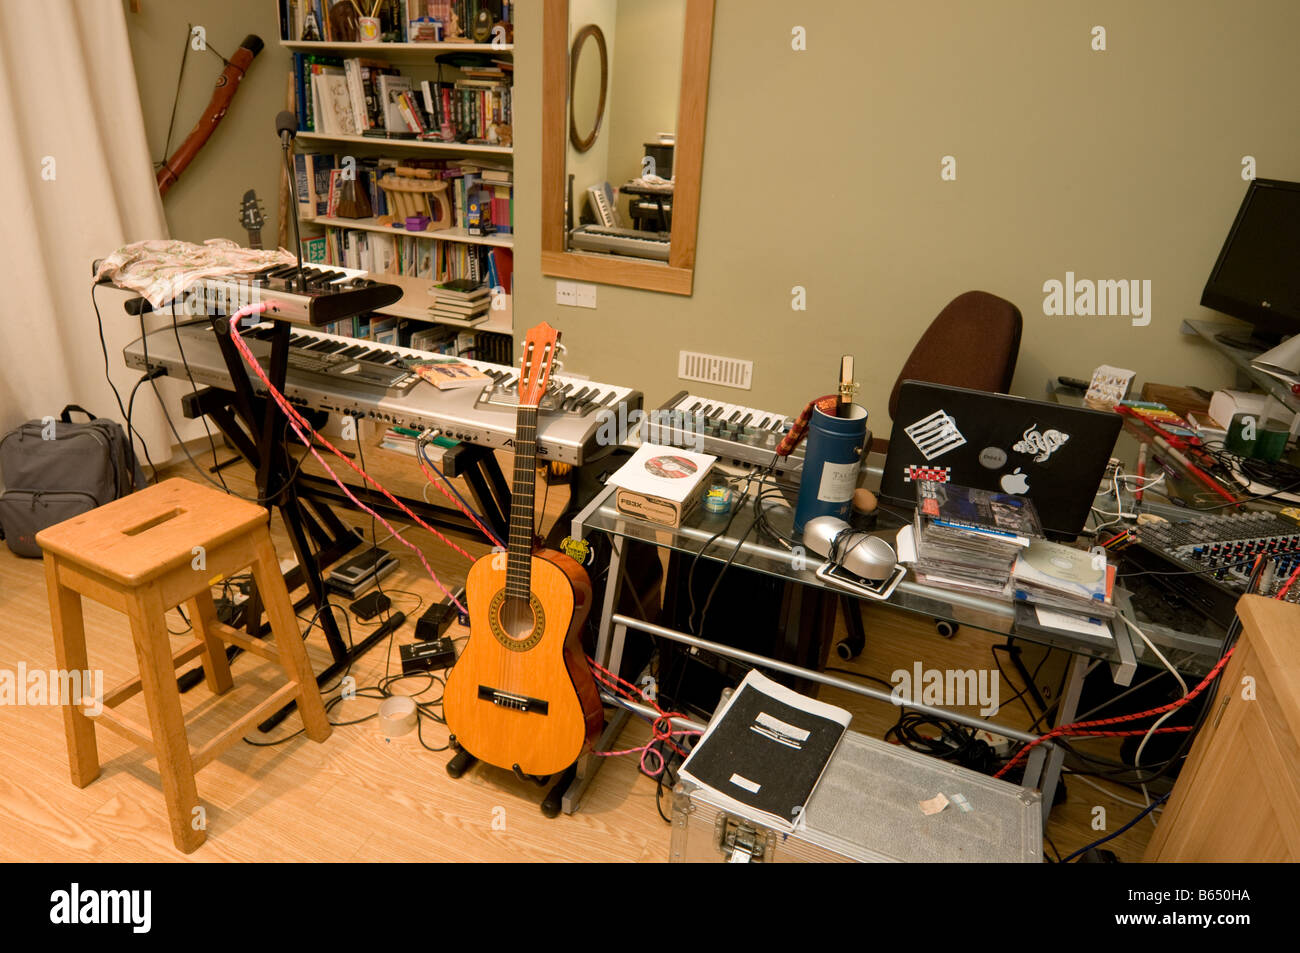 Awe Inspiring Teenage Boy Musician Music Room And Home Recording Studio Full Of Largest Home Design Picture Inspirations Pitcheantrous